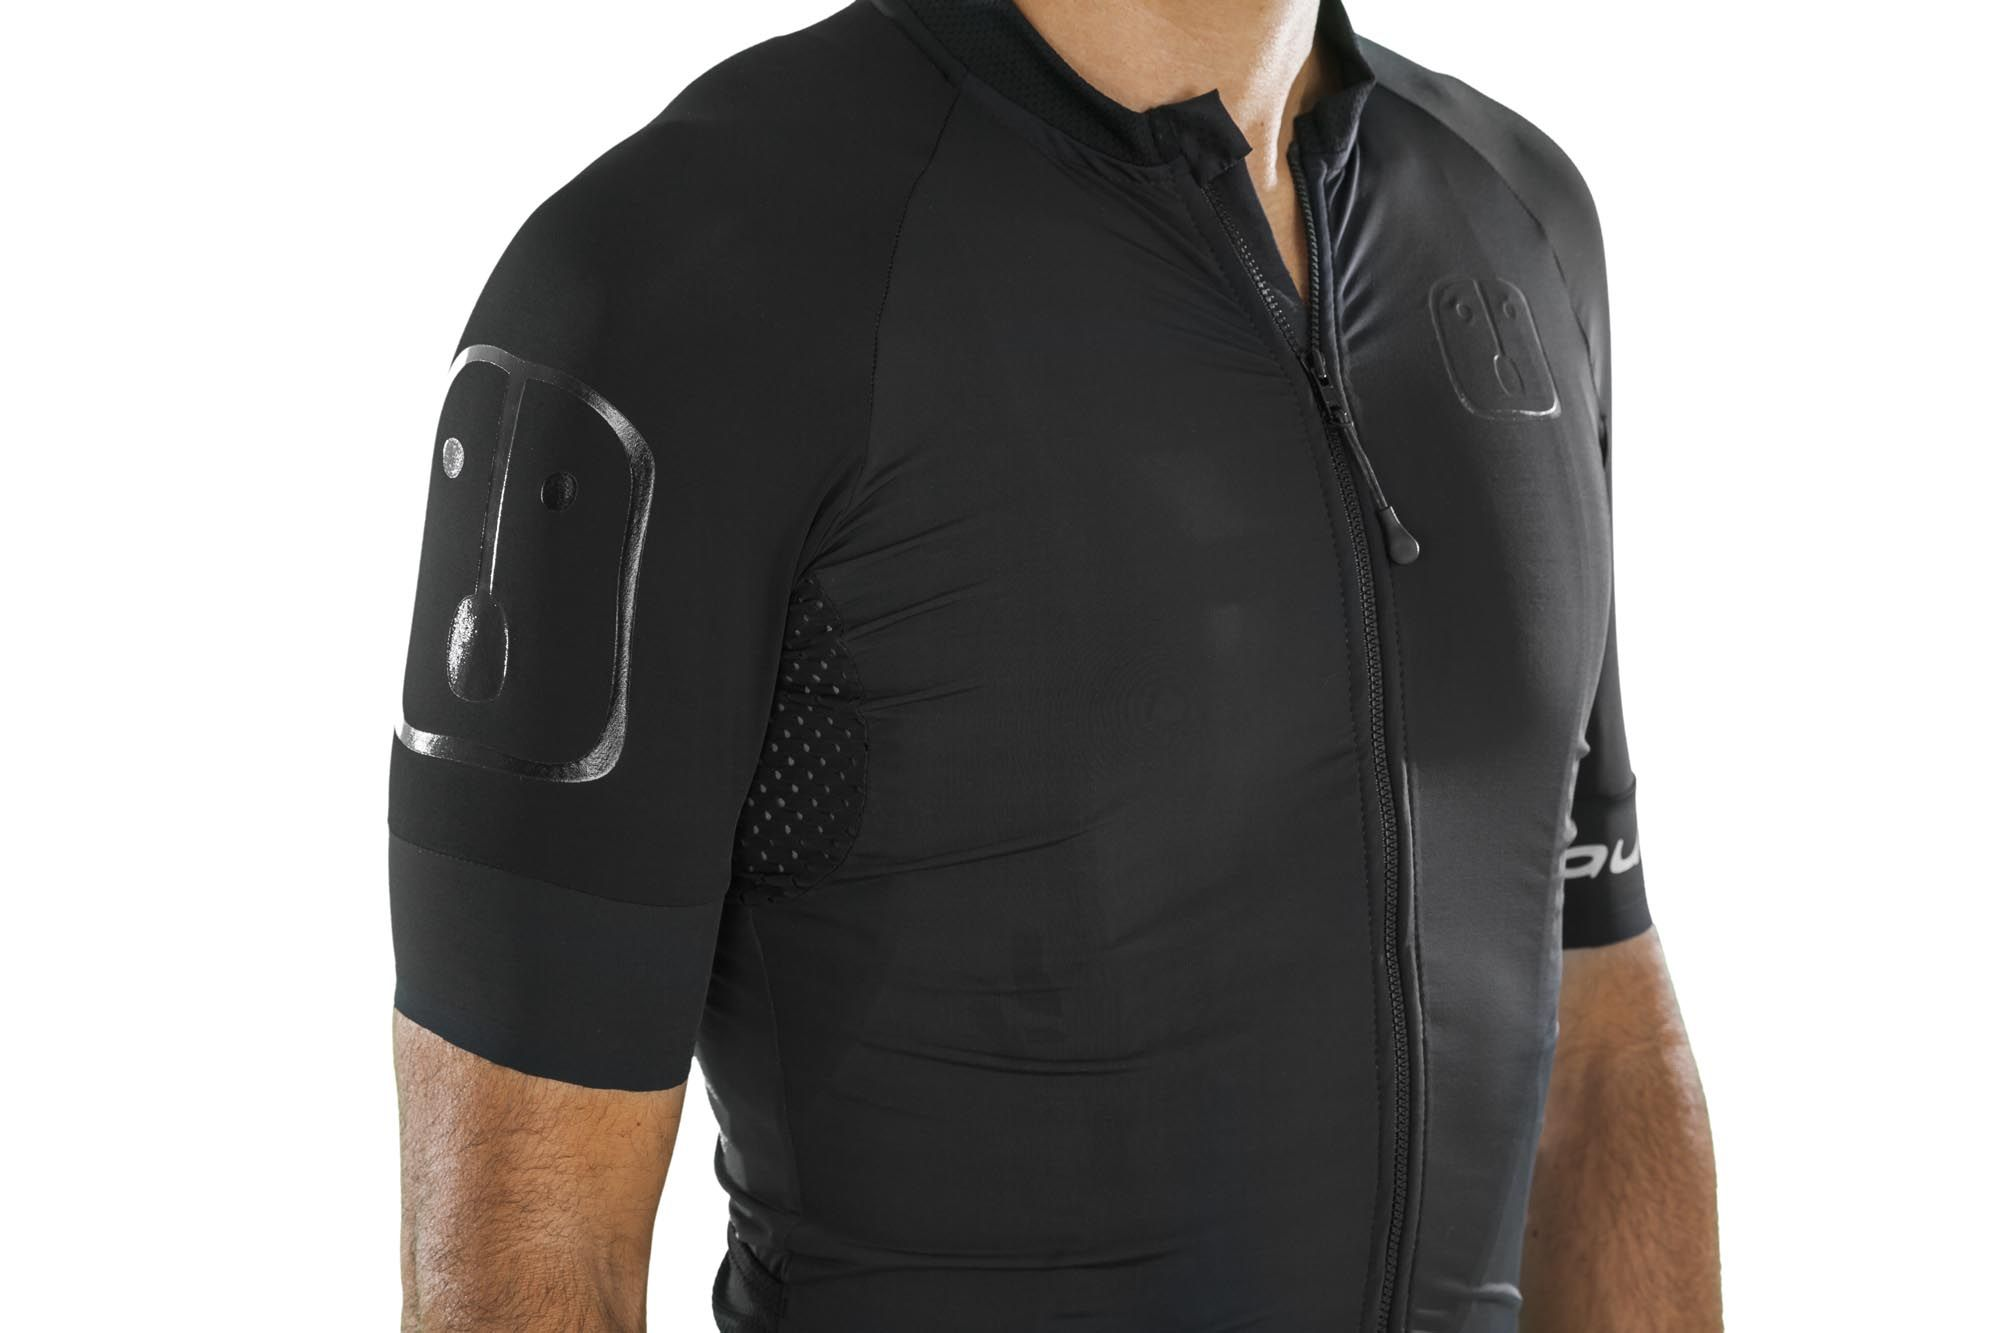 Camisa Ciclismo Black Tie - Masculina